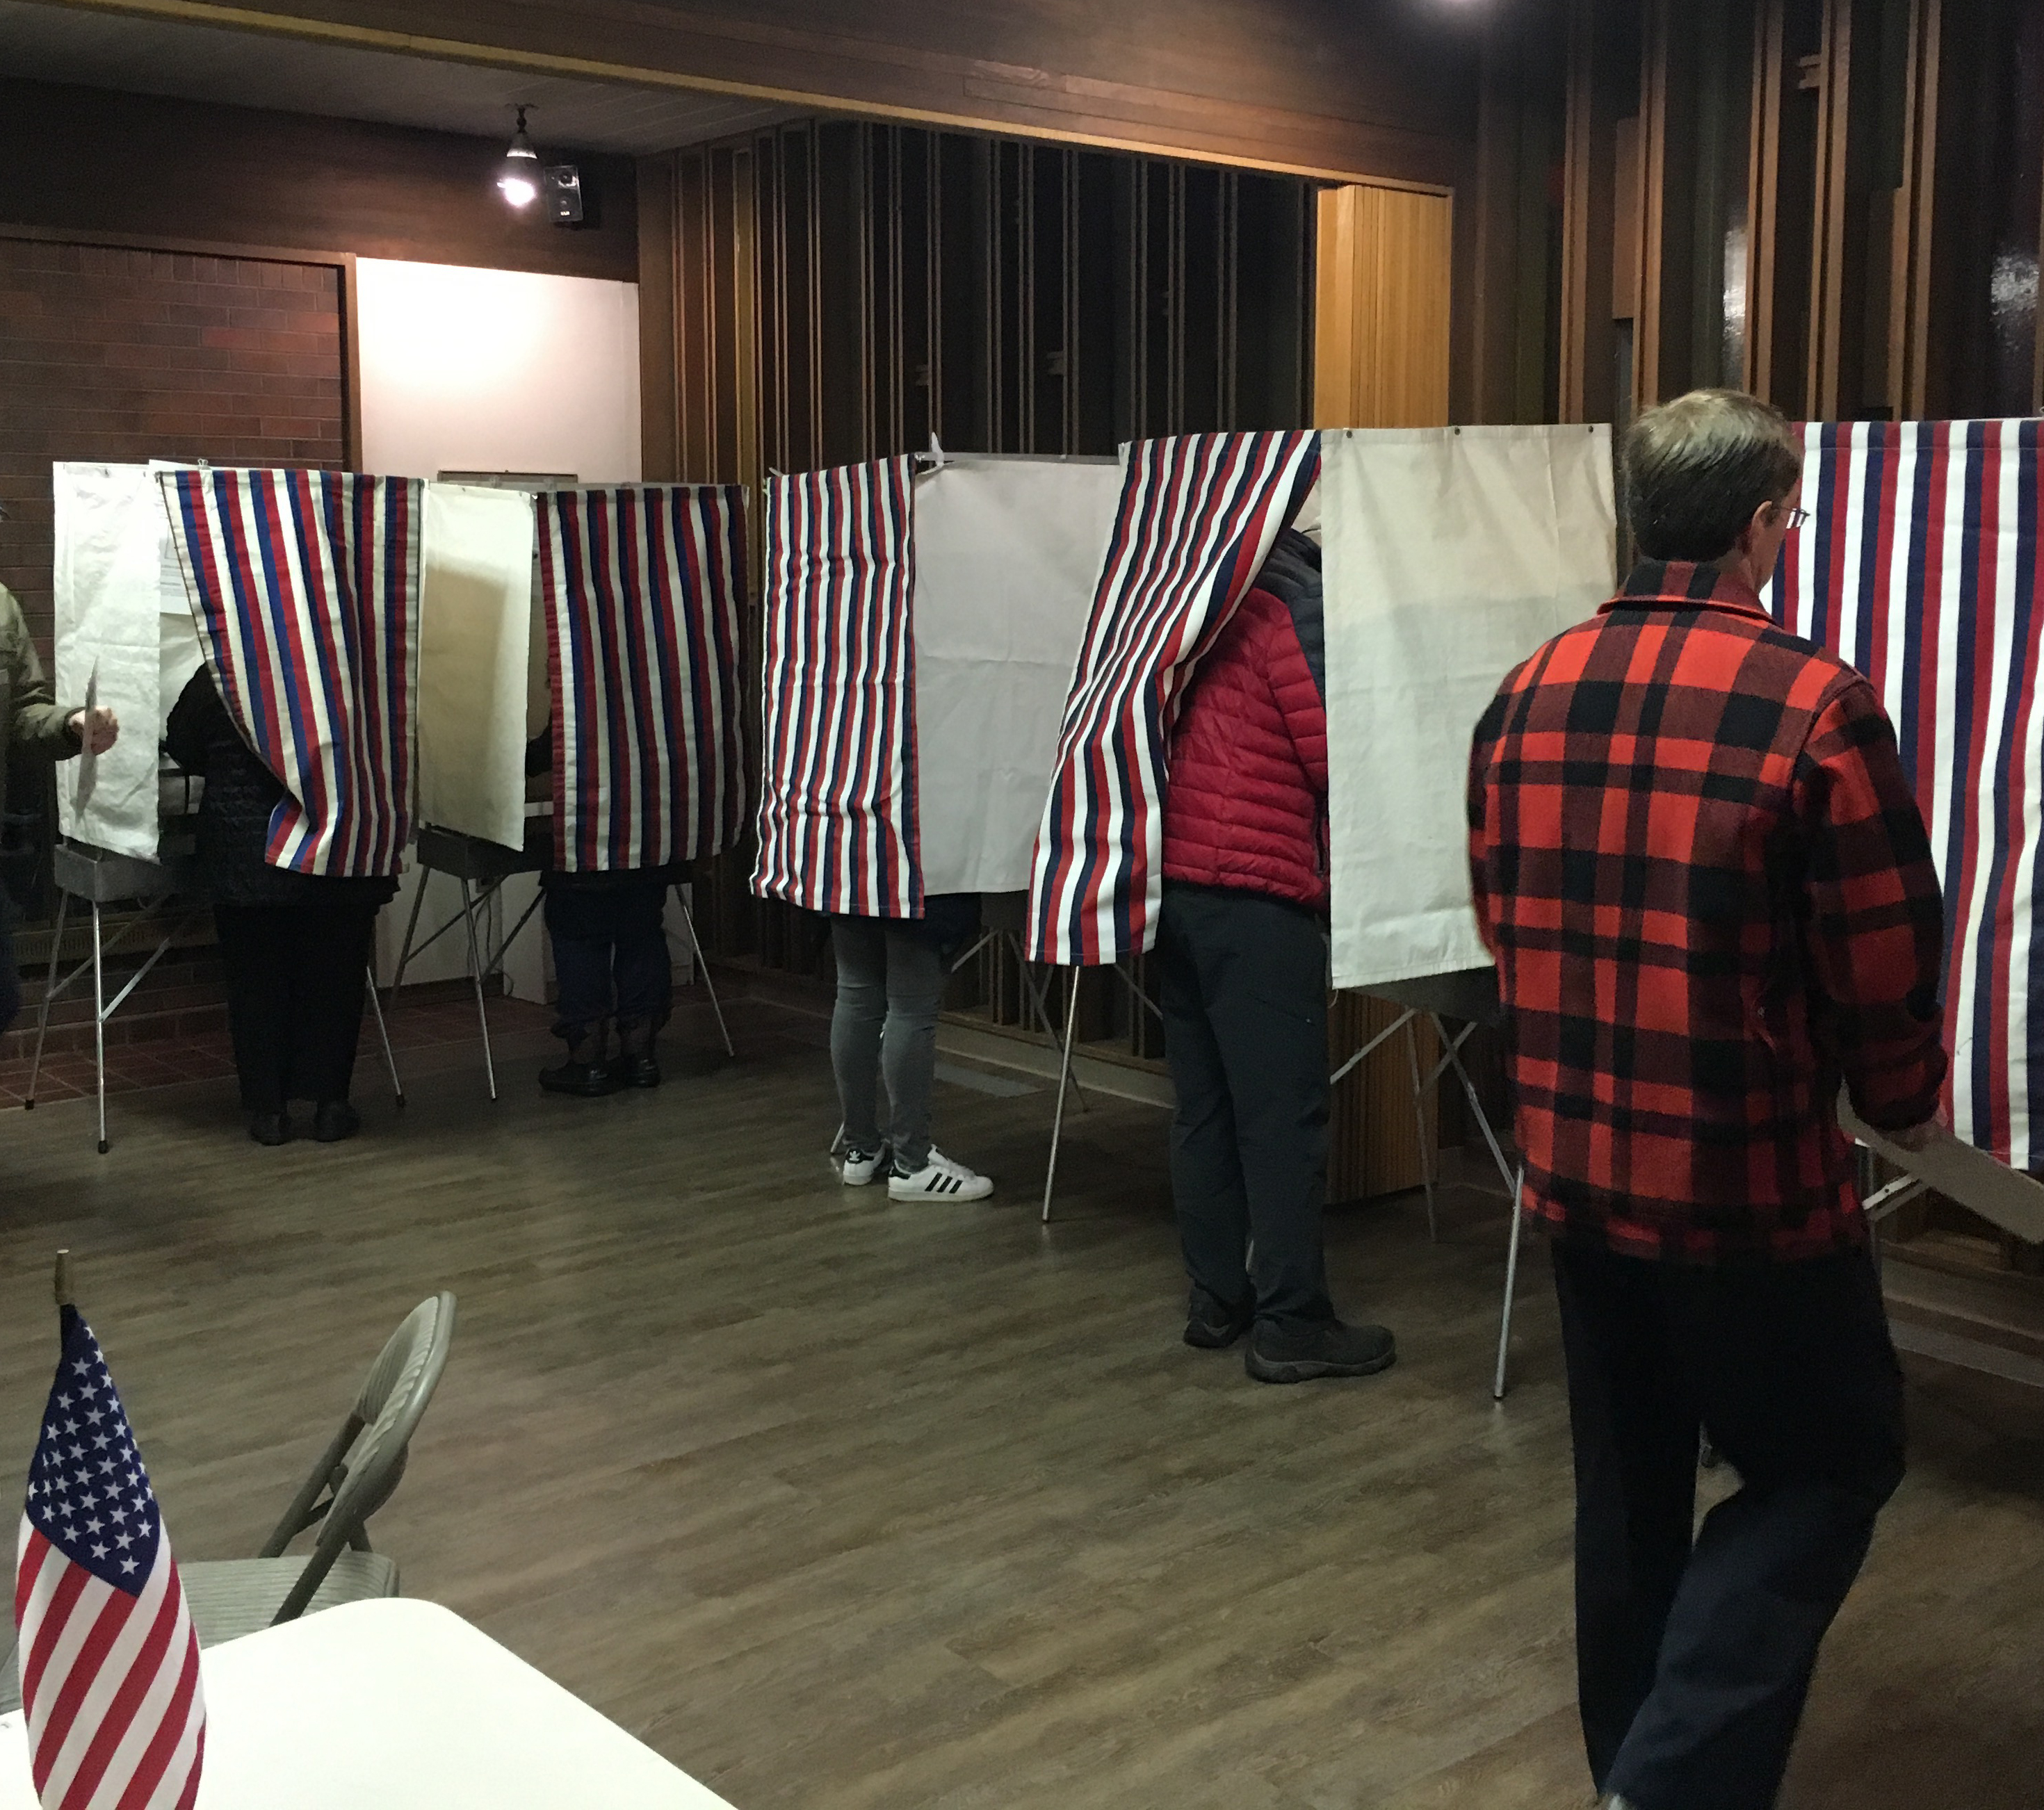 Voters fill out ballots Tuesday at First American Baptist Church in Anchorage. Only two House seats changed hands. Nov. 8, 2016. (Photo by Andrew Kitchenman/KTOO/APRN)